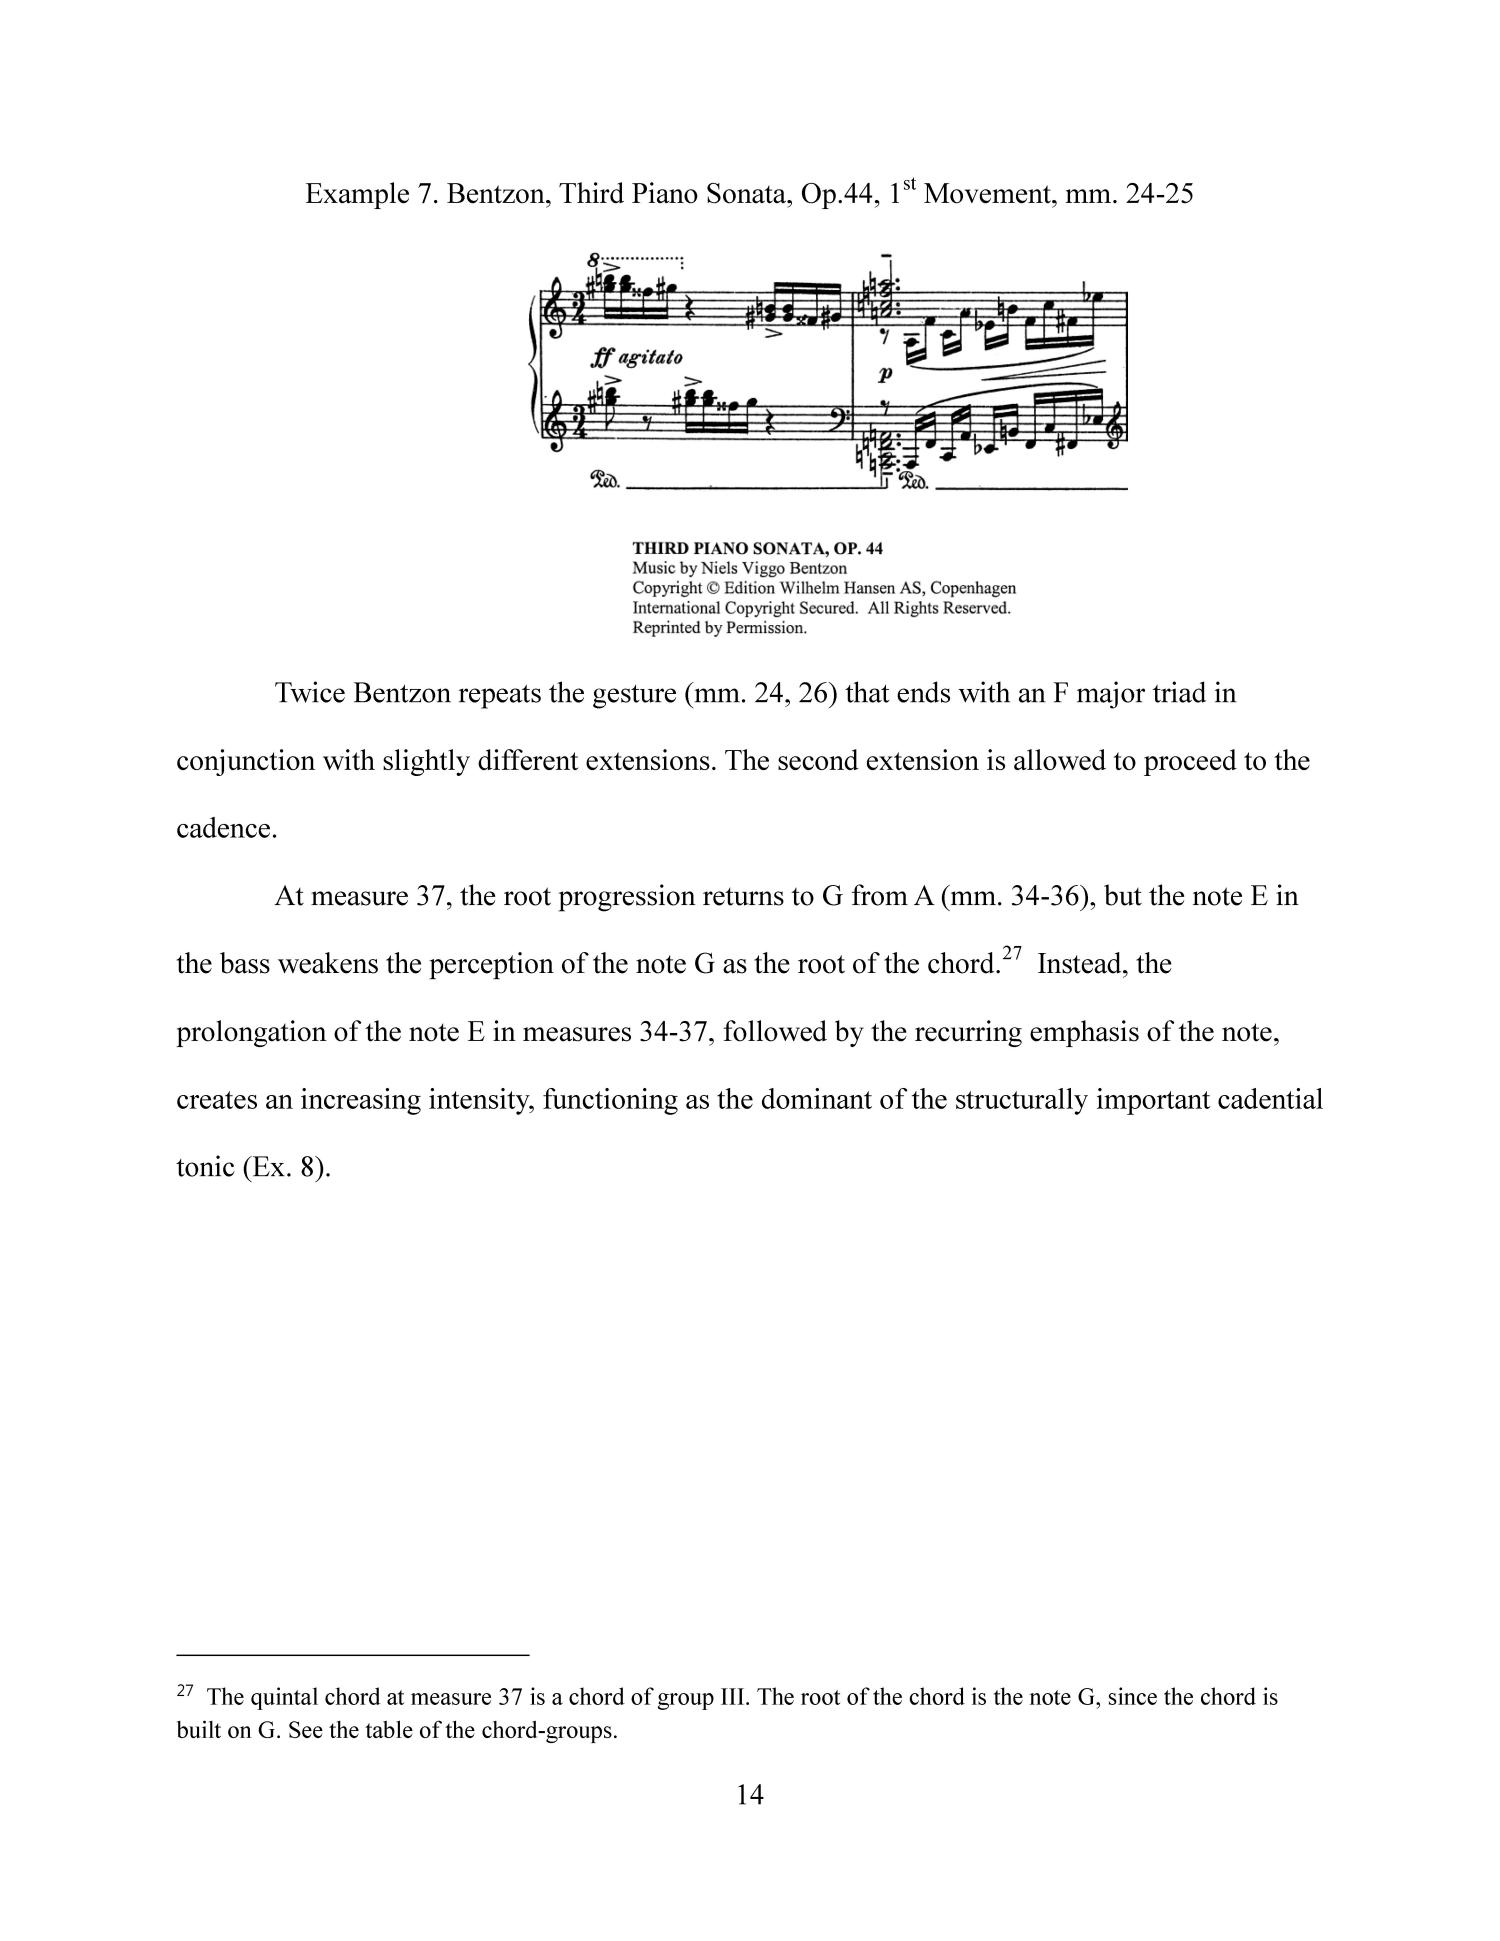 An Analytical Study: Applying Hindemith's Tonal Theory to Niels